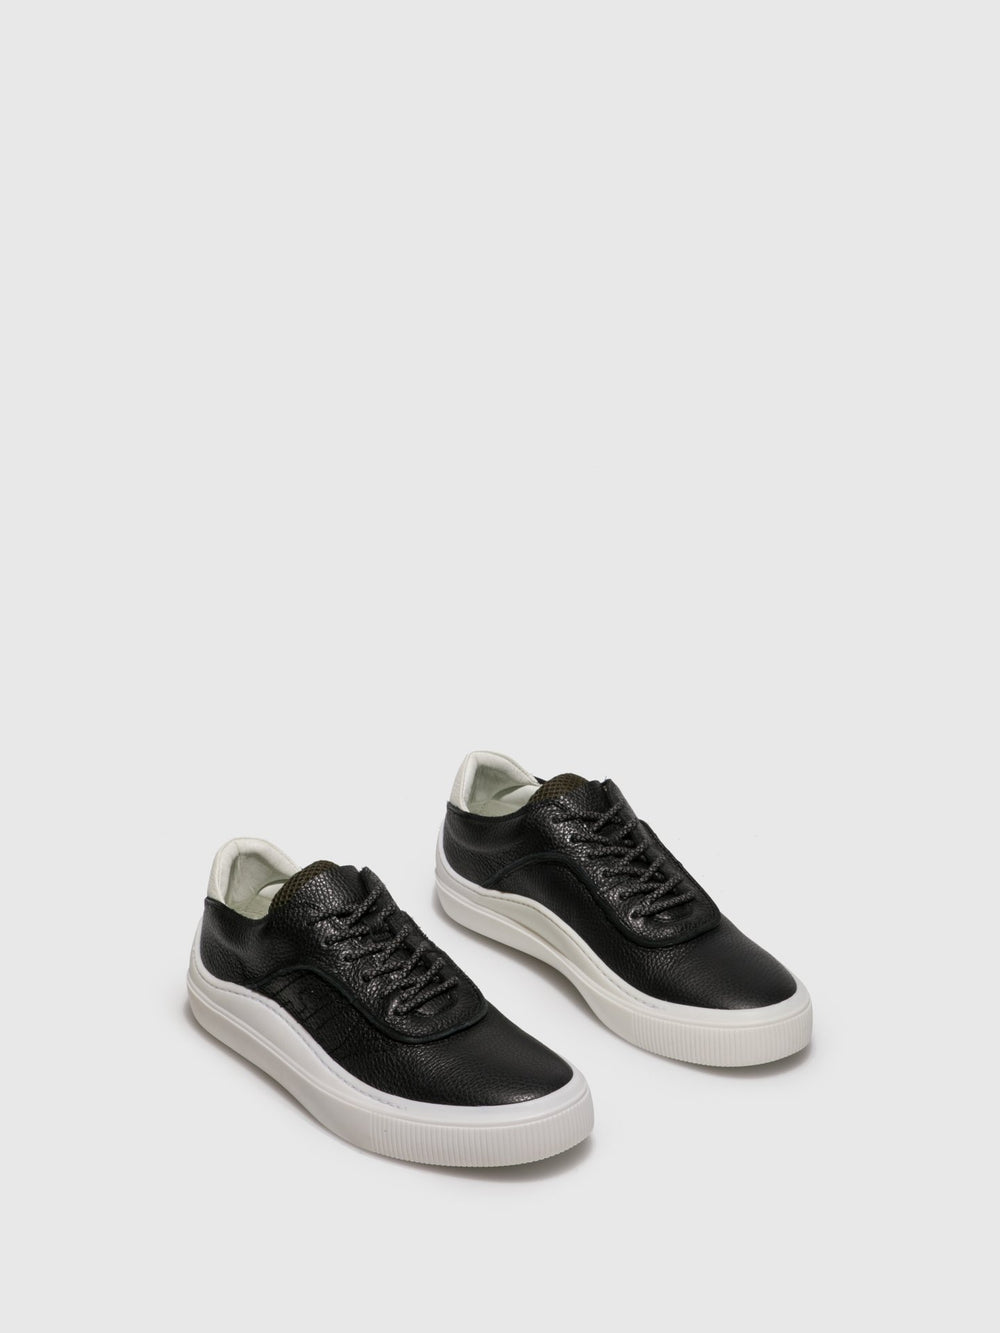 Lace-up Trainers SAMA415FLY BLACK/WHITE